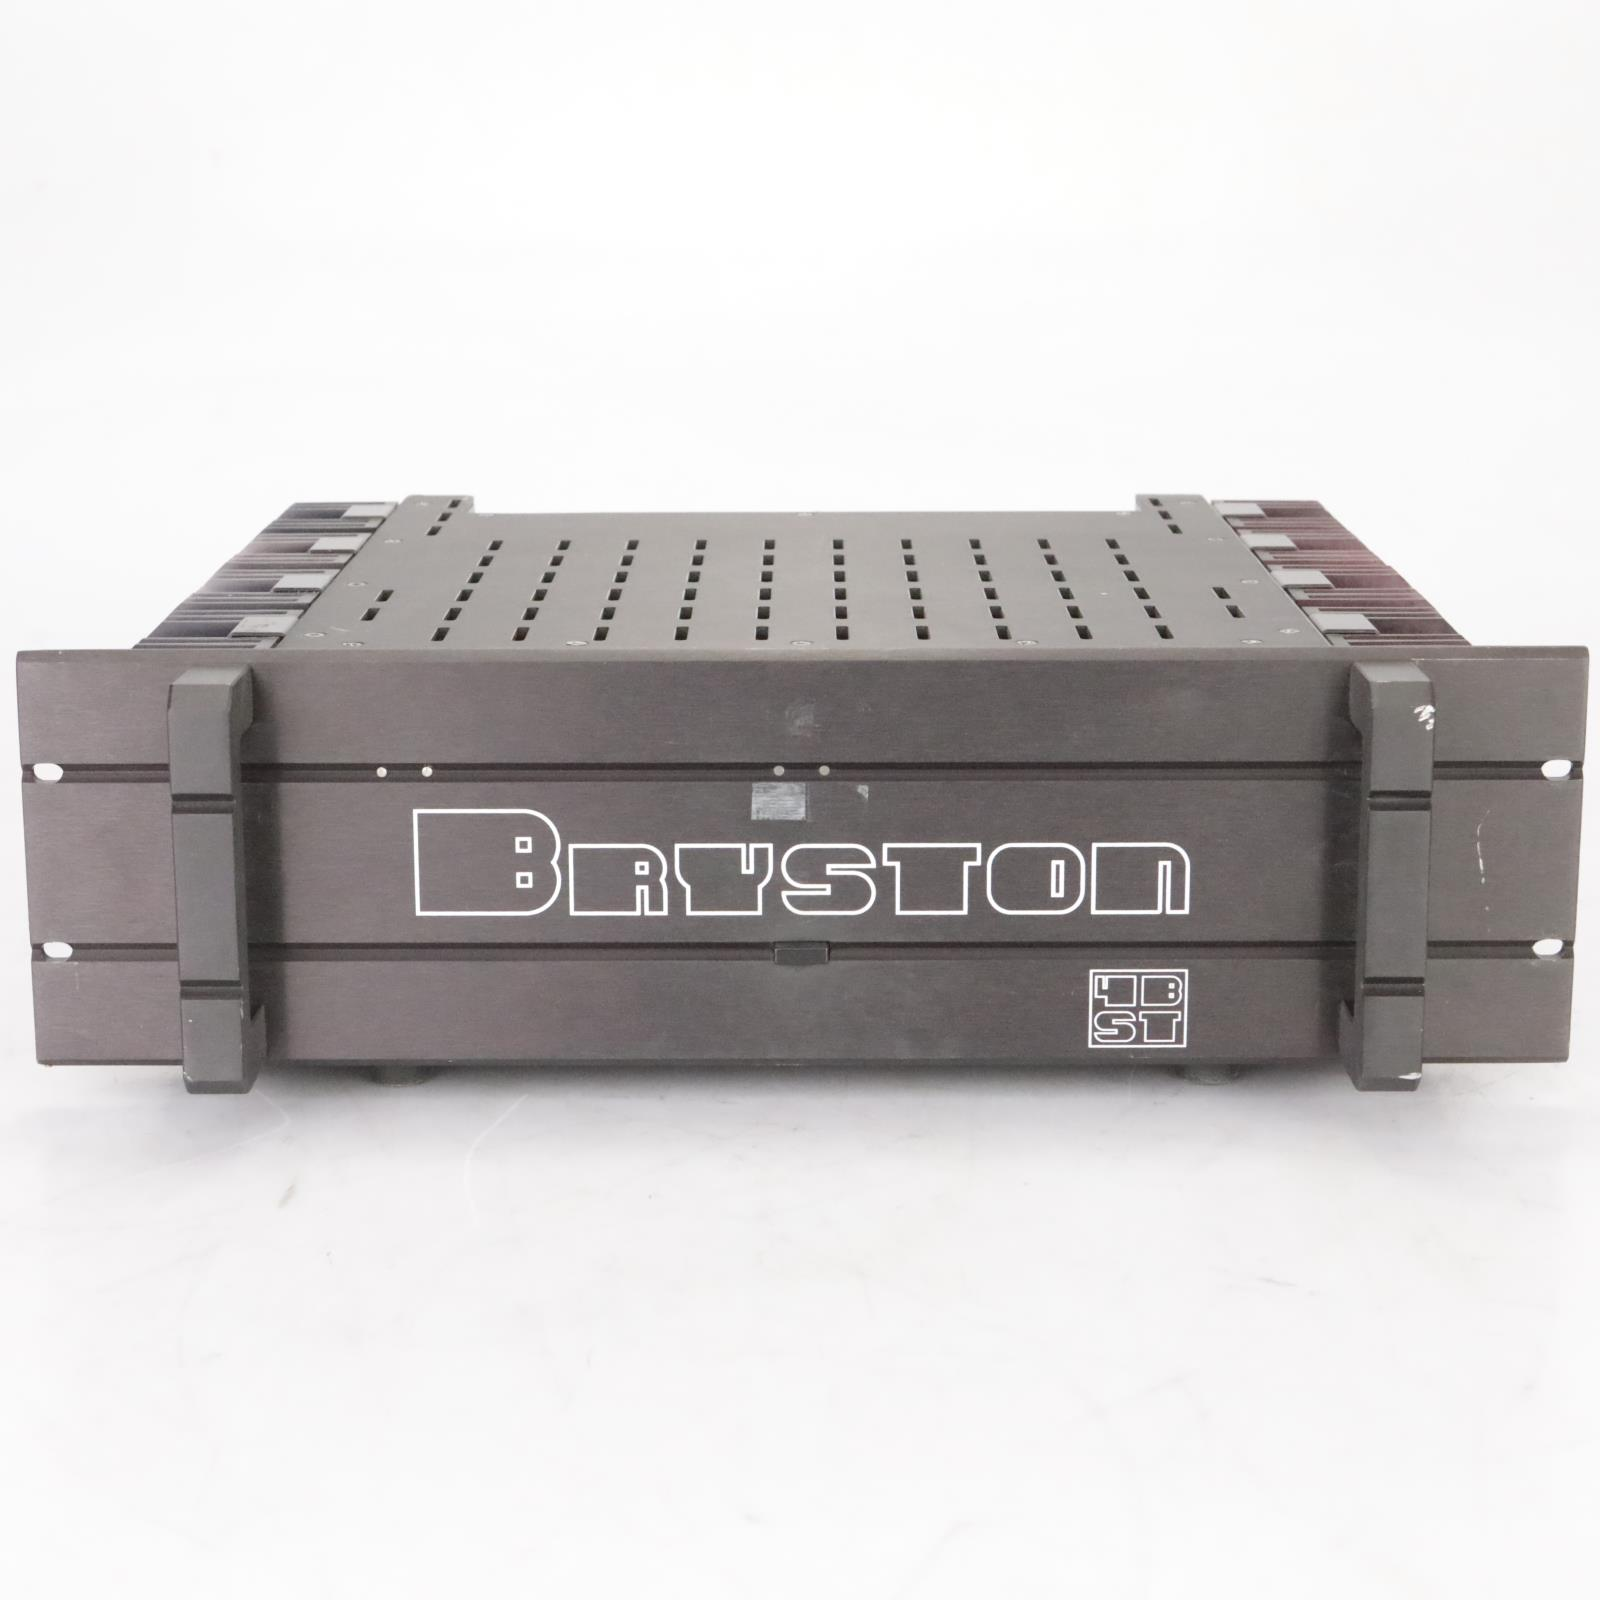 Bryston 4B ST Stereo Solid State Power Amplifier #38632